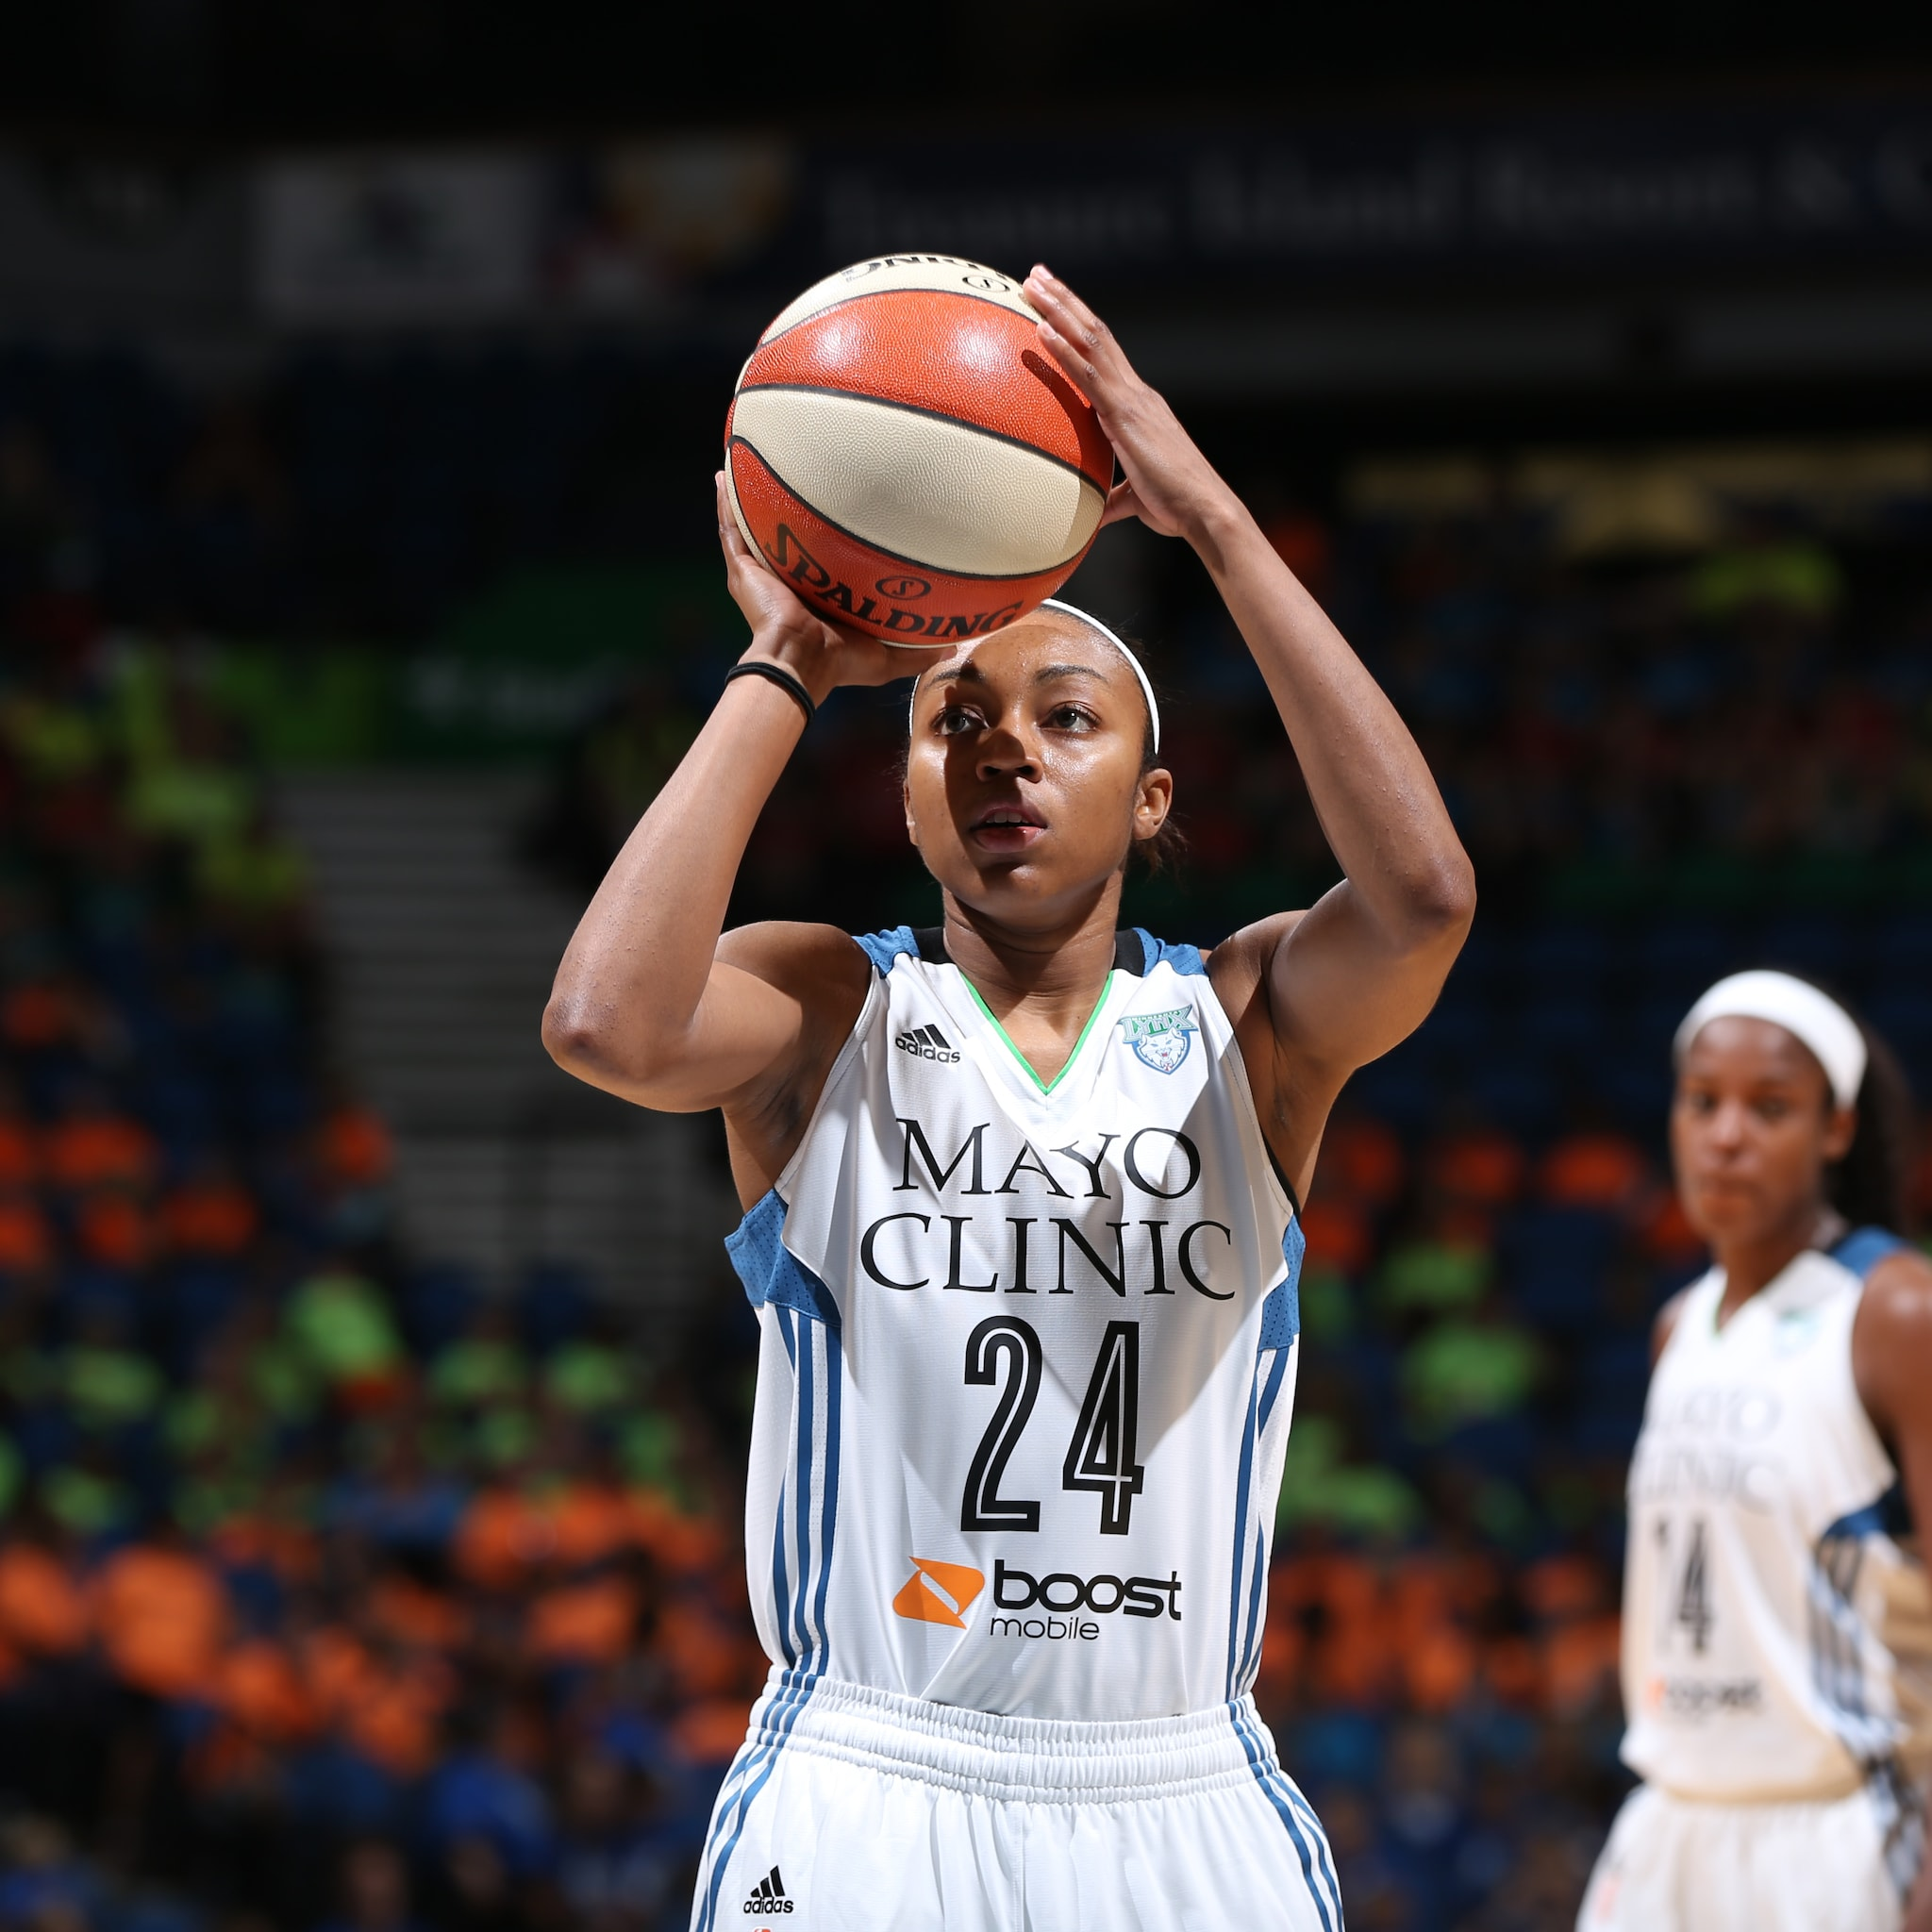 MINNEAPOLIS, MN - JULY 22: Renee Montgomery #24 of the Minnesota Lynx attempts a free throw against the Connecticut Sun on July 22, 2015 at Target Center in Minneapolis, Minnesota. NOTE TO USER: User expressly acknowledges and agrees that, by downloading and or using this Photograph, user is consenting to the terms and conditions of the Getty Images License Agreement. Mandatory Copyright Notice: Copyright 2015 NBAE (Photo by David Sherman/NBAE via Getty Images)